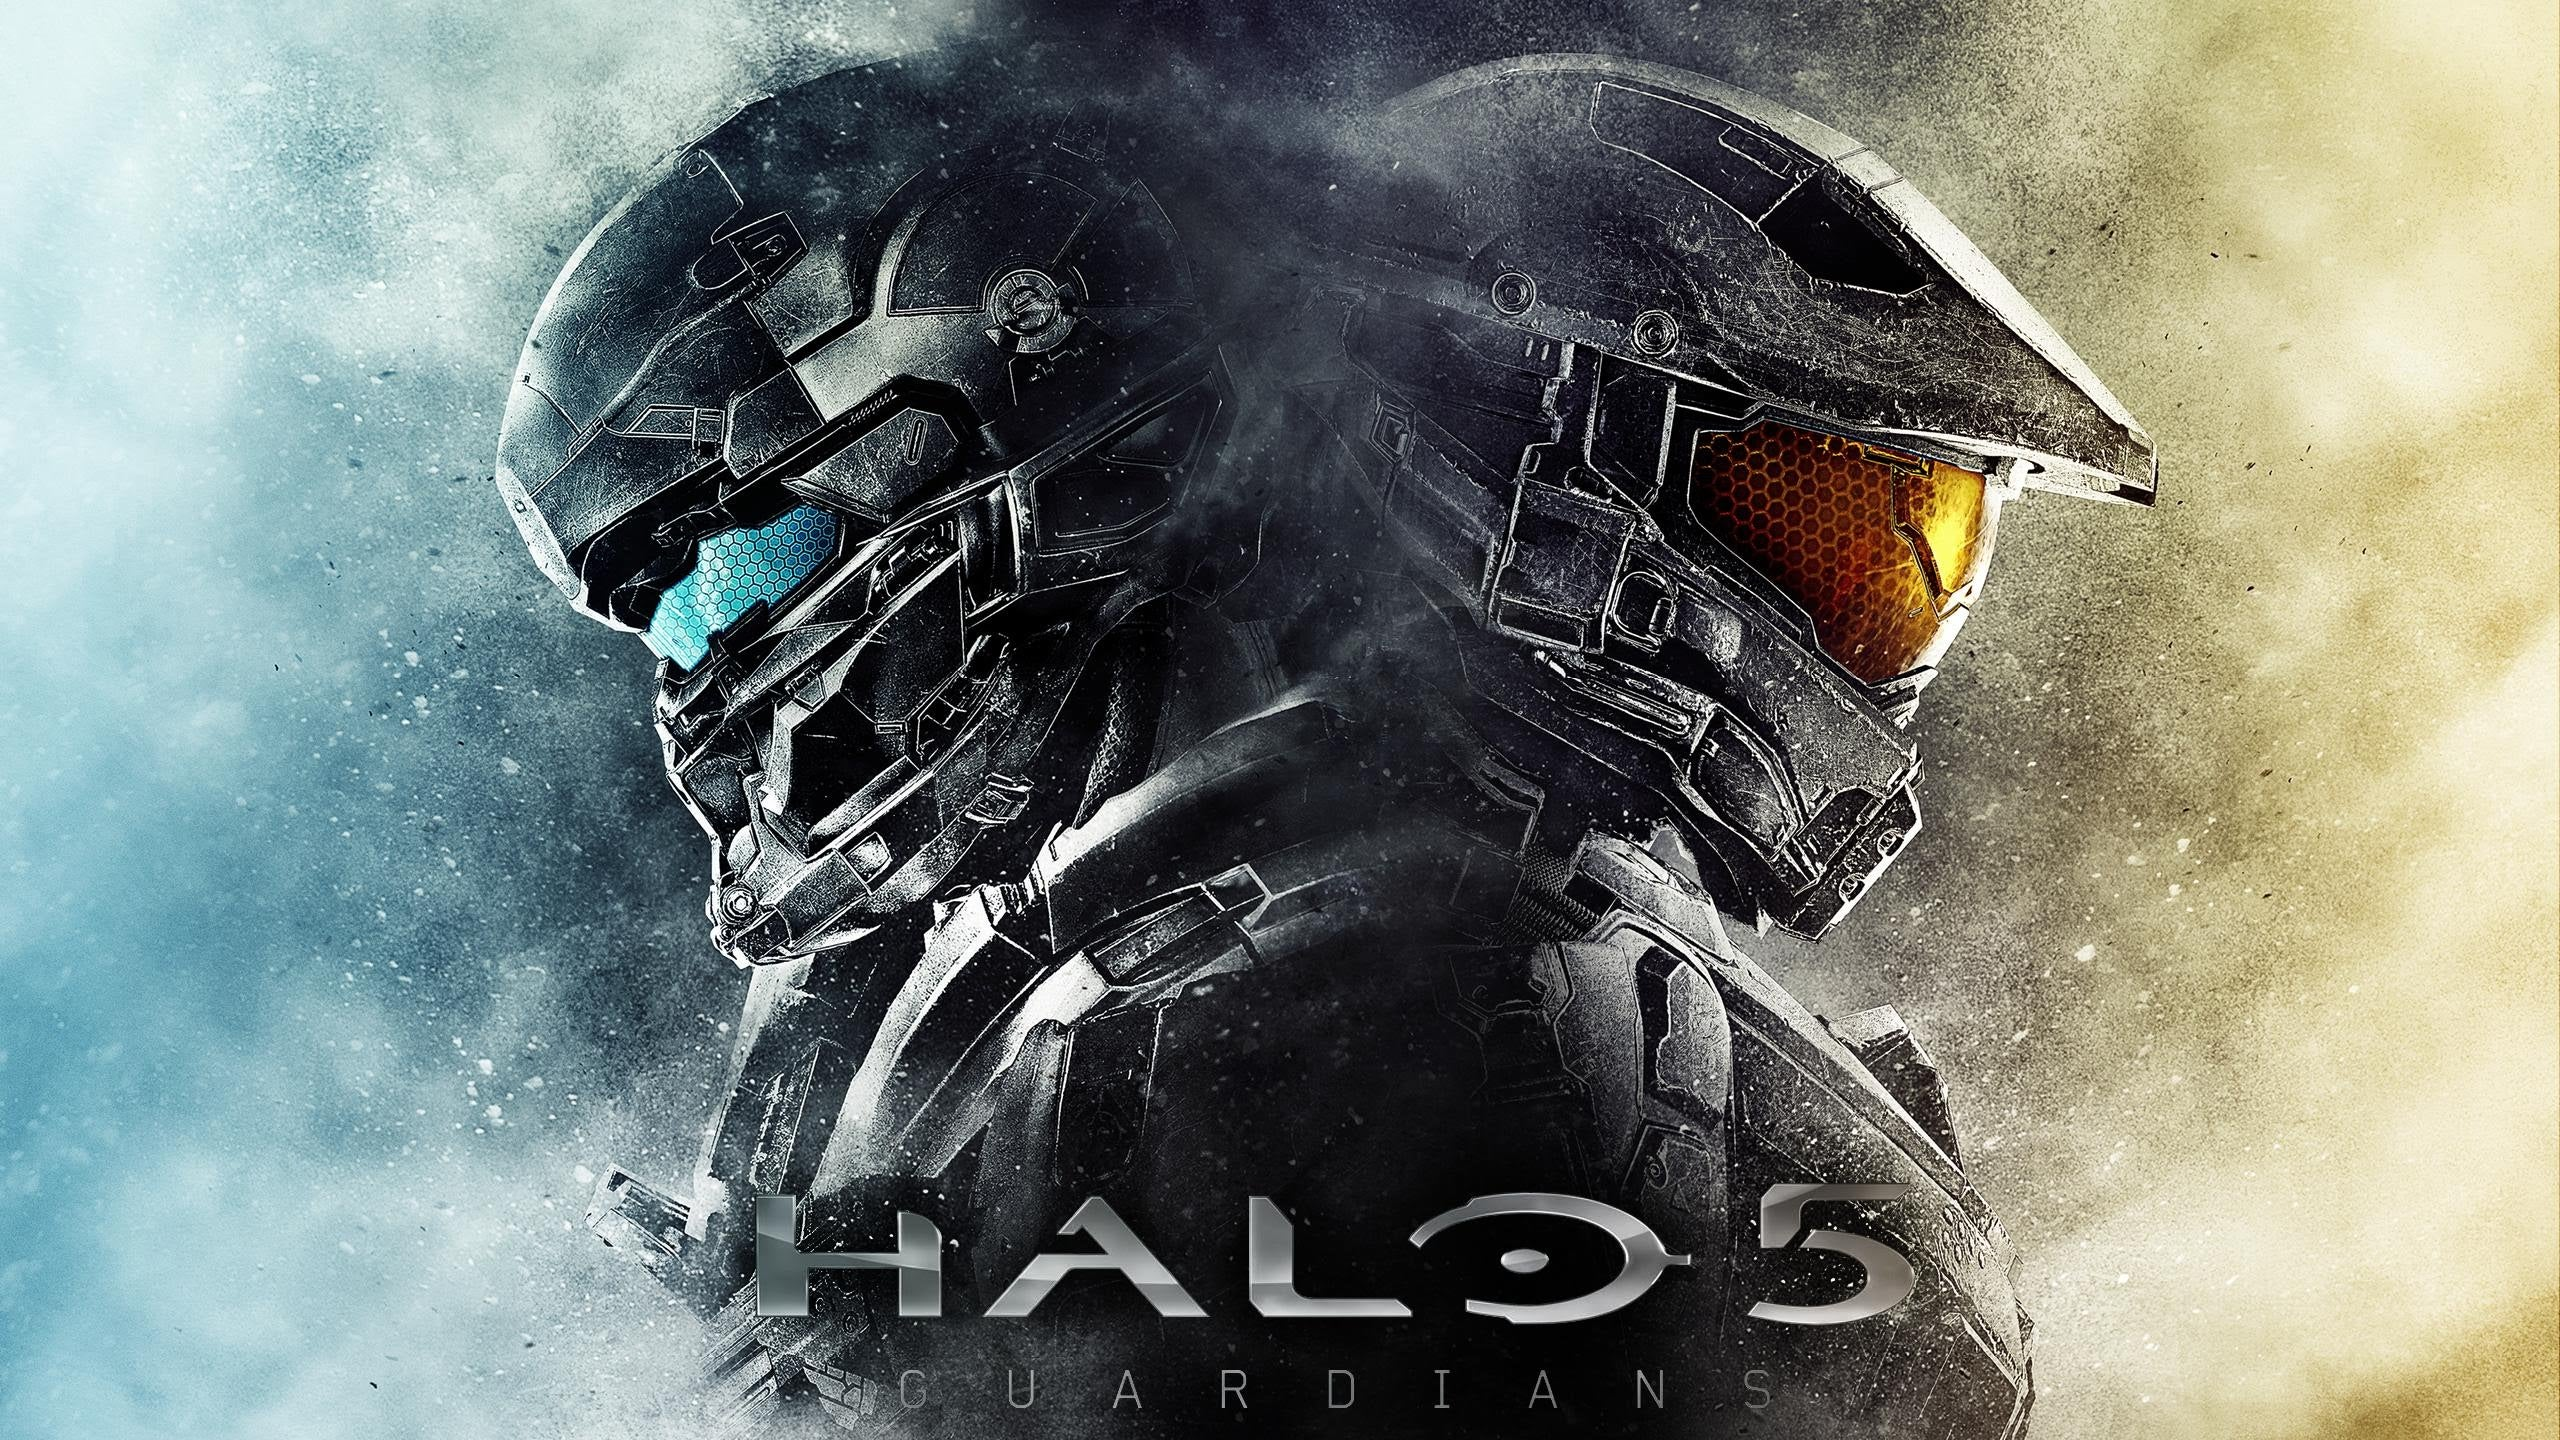 halo 5 xbox one x 4k patch  ing november 2 trusted reviews